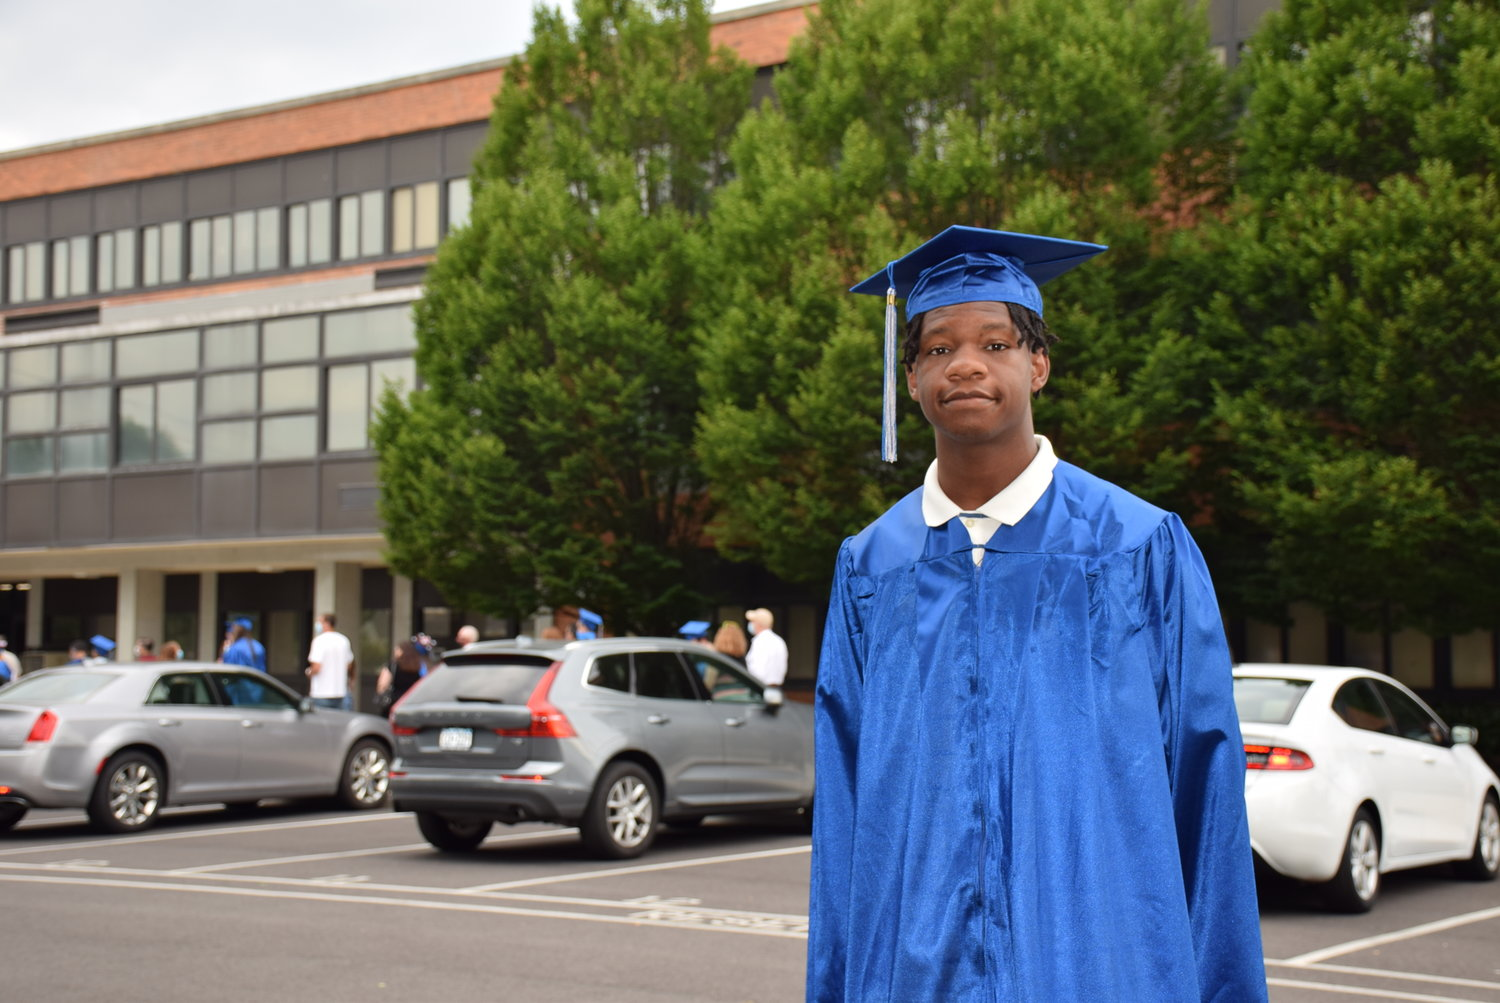 Micah Bristol lined up for his June 27 graduation ceremony at Calhoun High School.